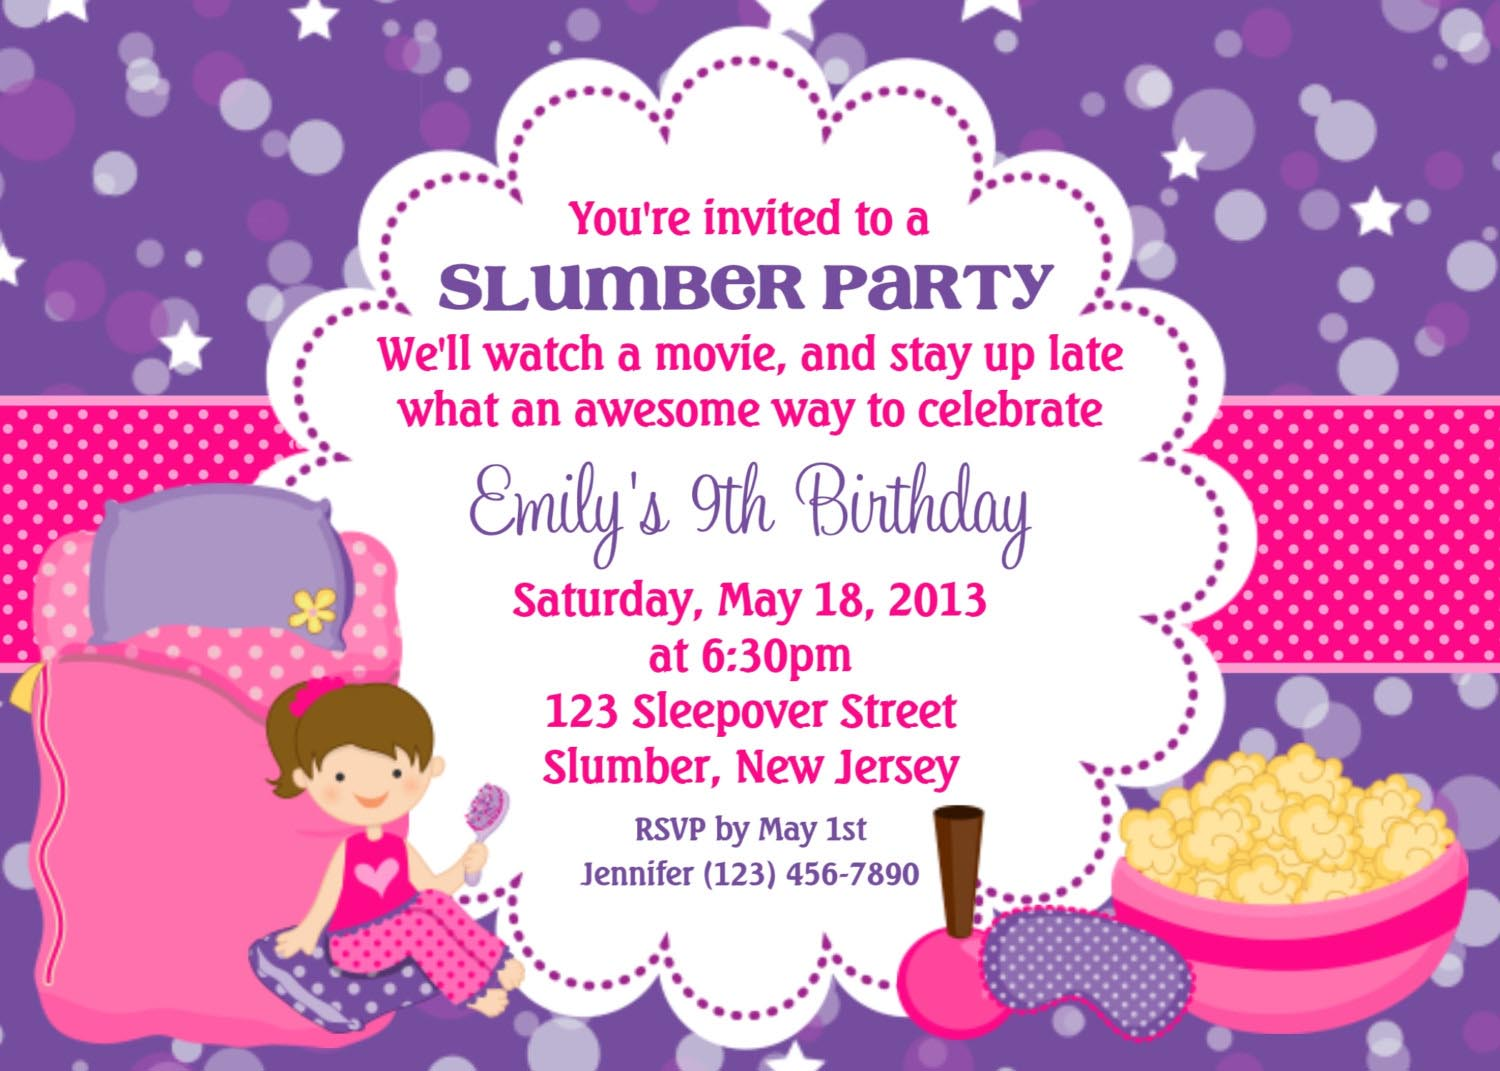 printable spa party invitations templates ctsfashion com spa slumber party invitations printable wedding invitation